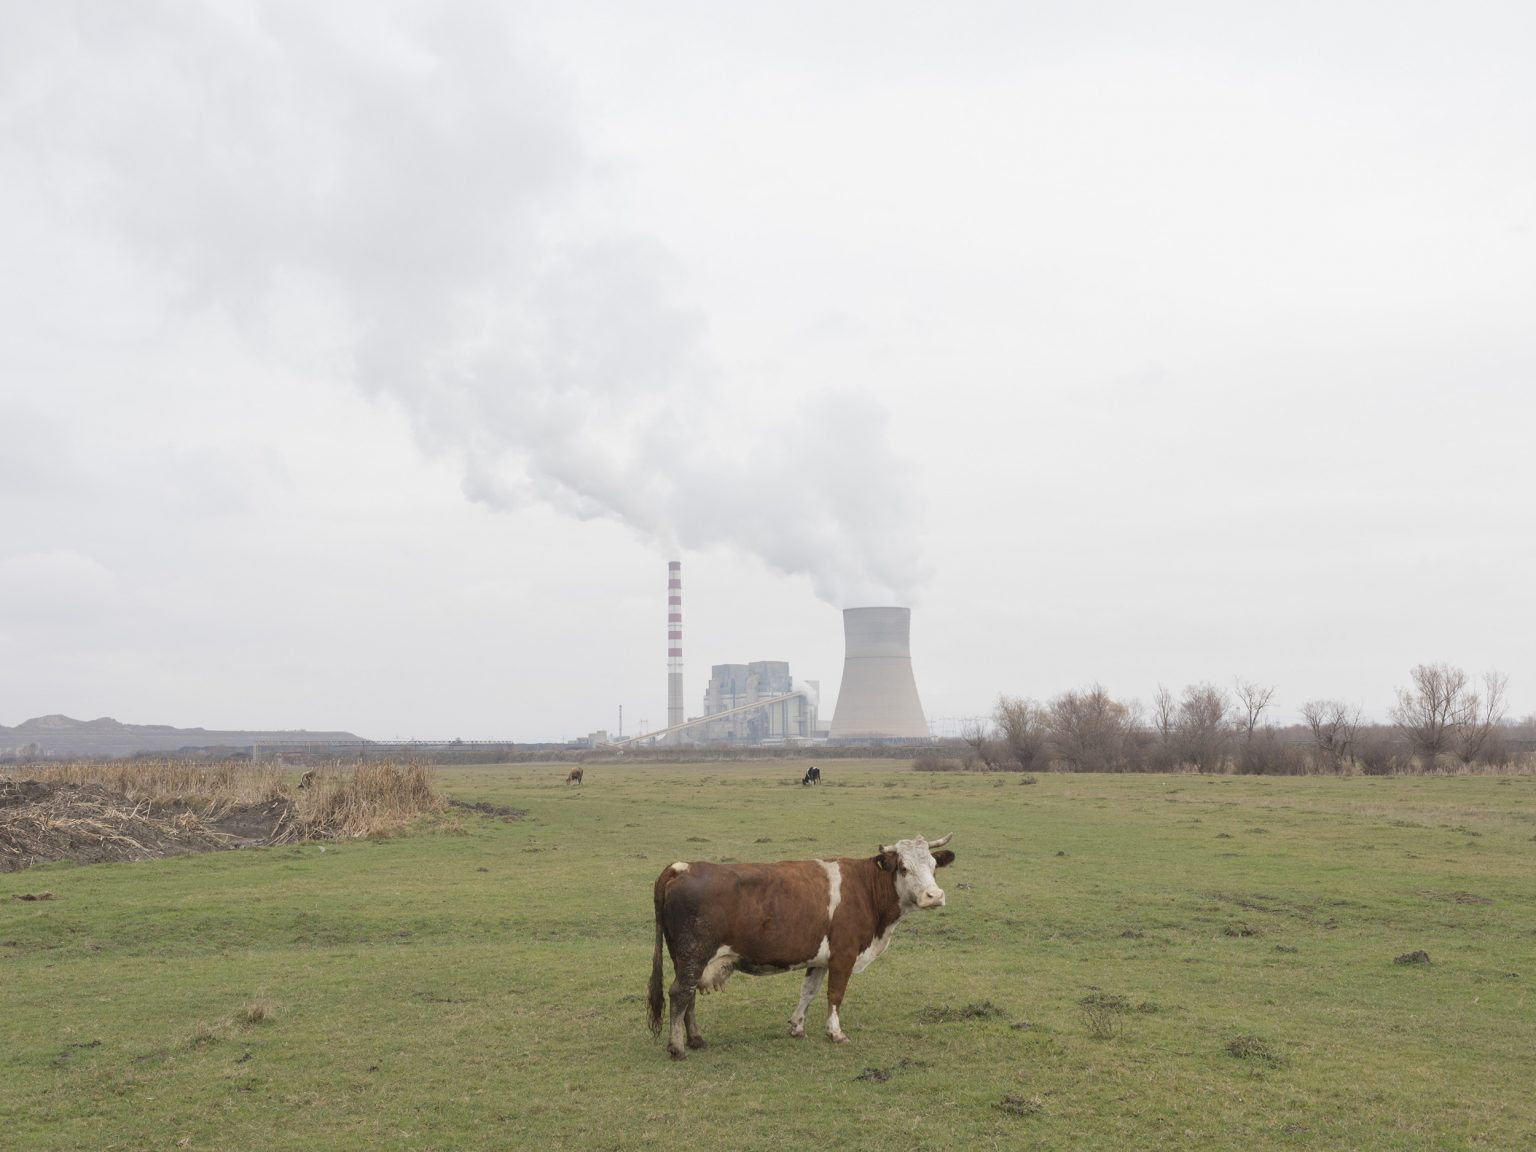 A cow grazing in front of the KEK power plant in Obiliq/Obilić. Powered by lignite, obsolete and lacking maintenance after the war, the plant is very inefficient and is one of the main sources of pollution in the area.